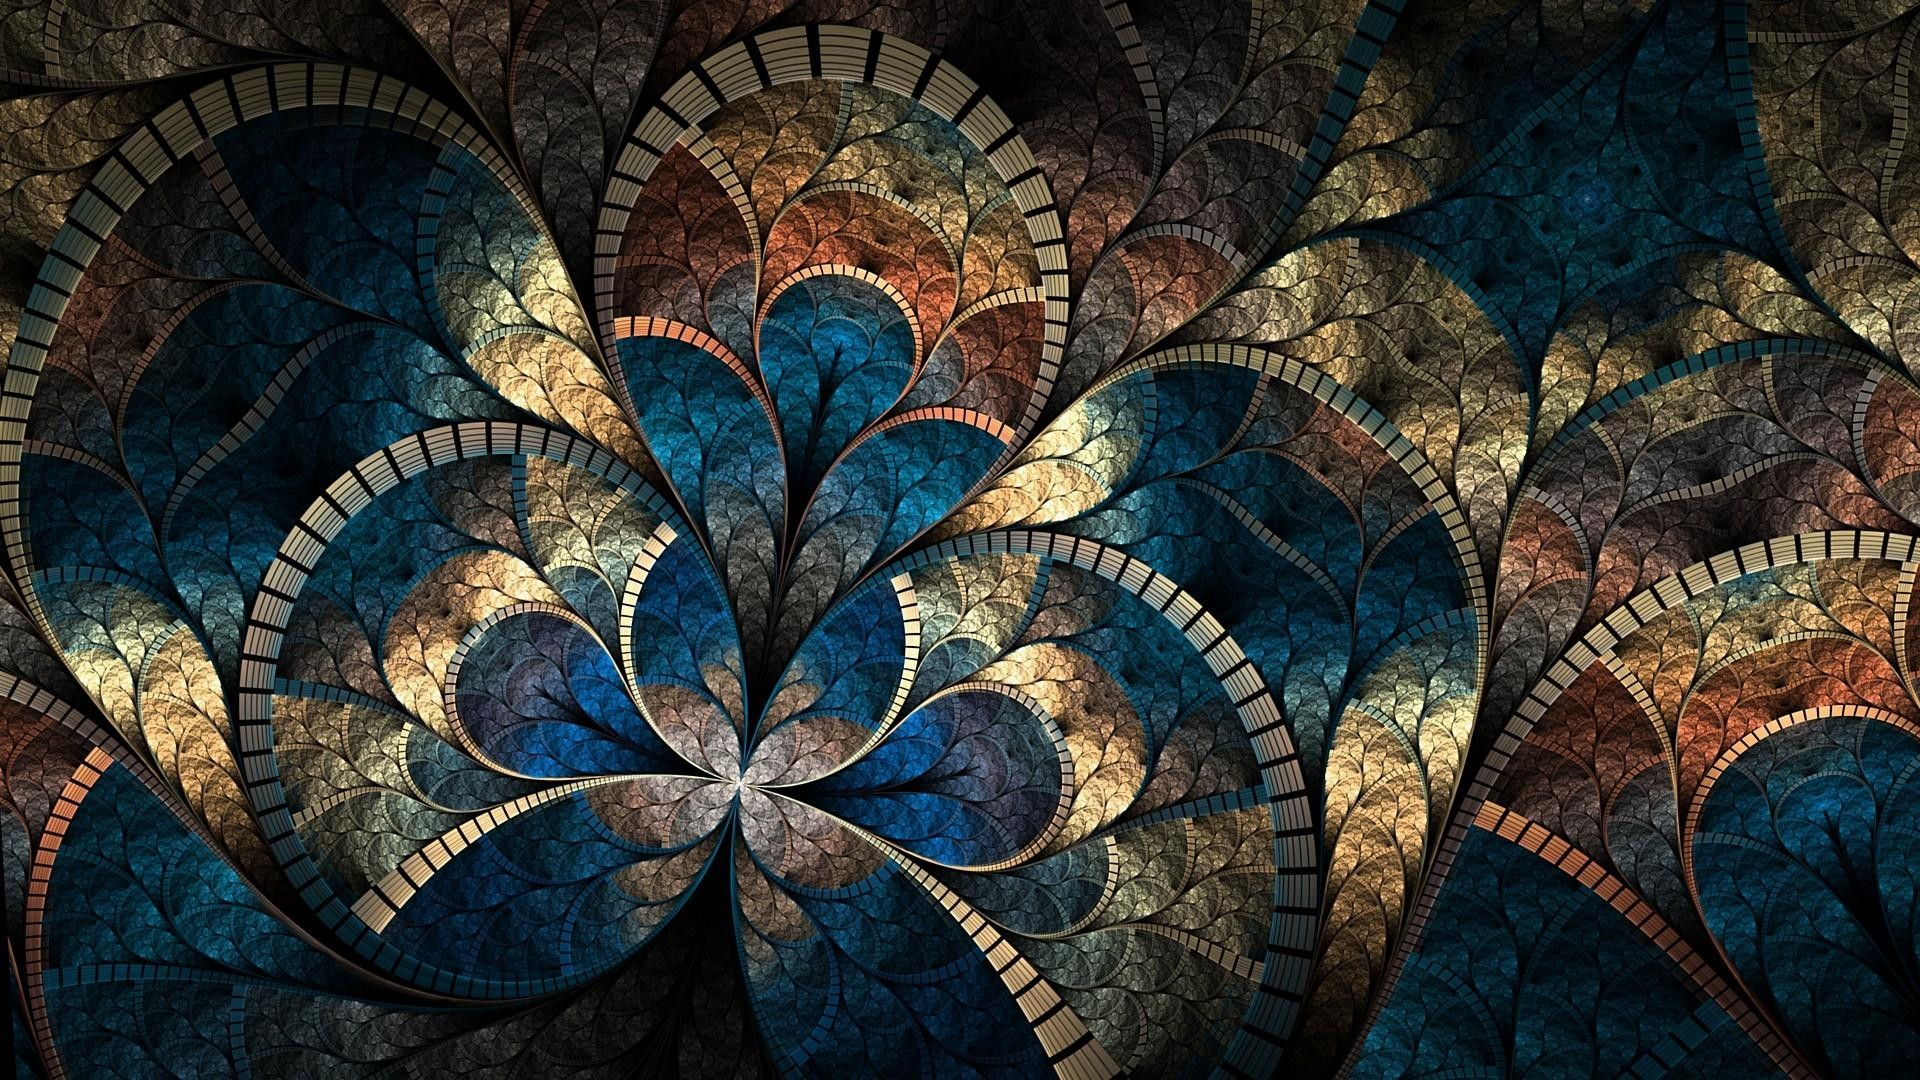 Abstract-fractal-cg-digital-art-artistic-pattern-psychedelic-